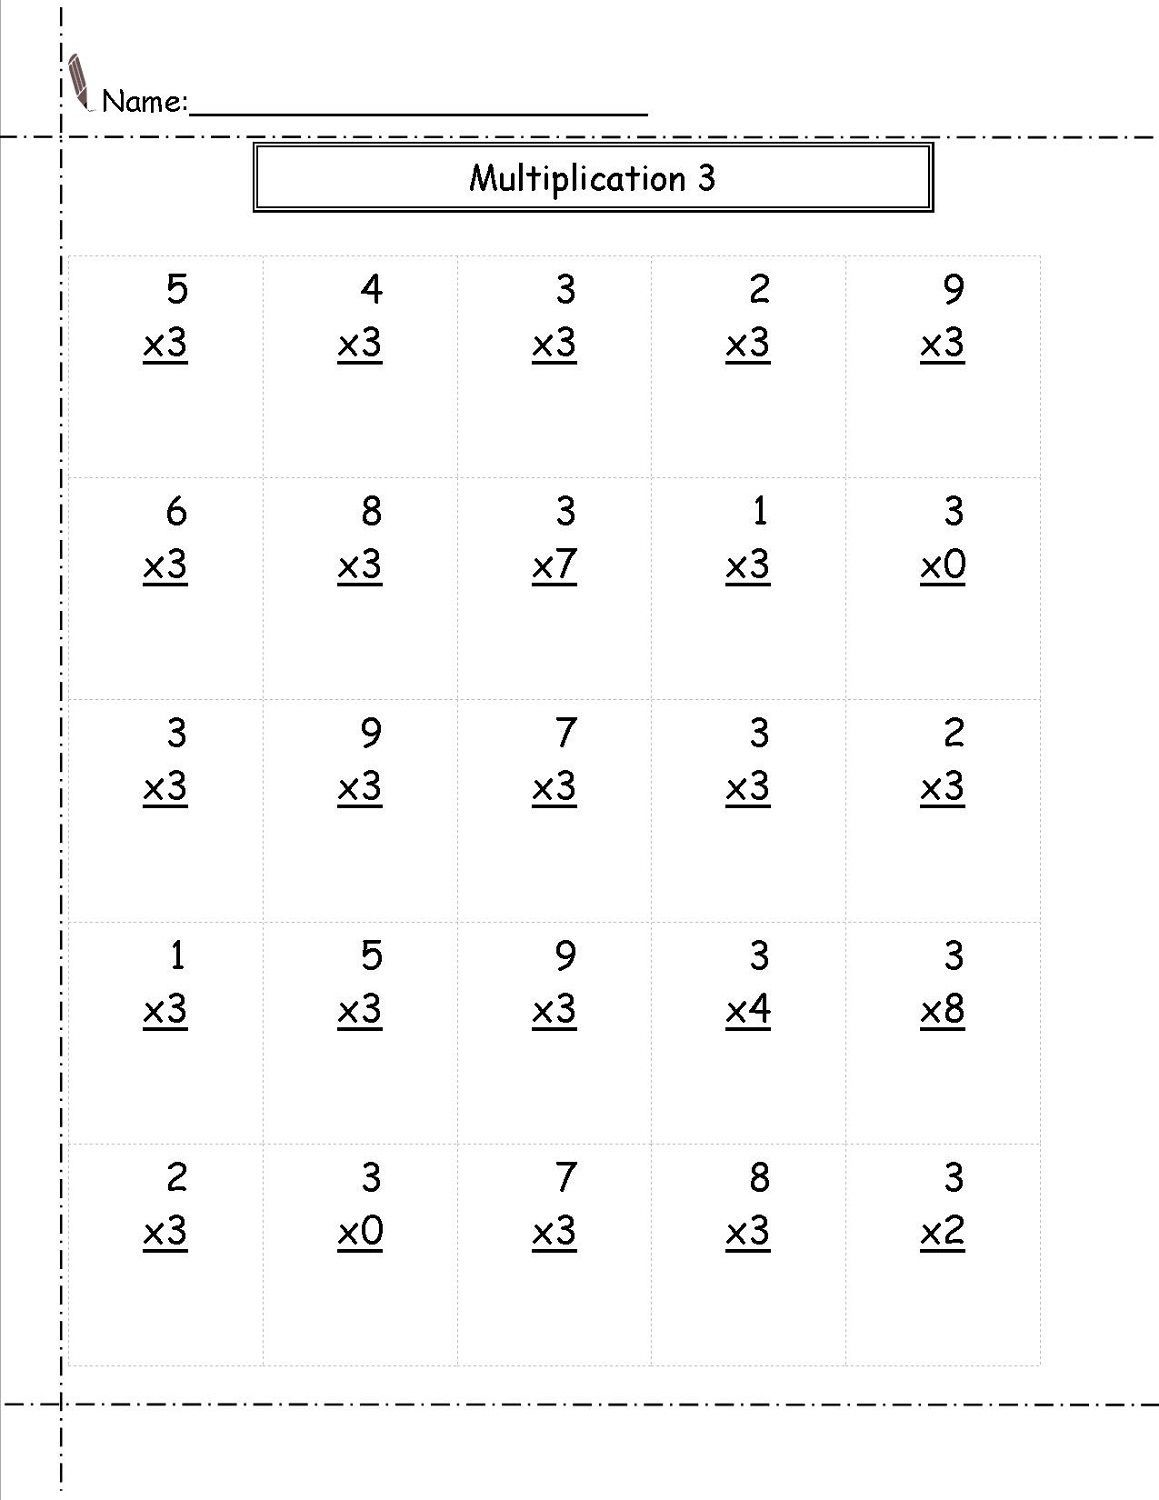 Multiply By 3 Worksheet In